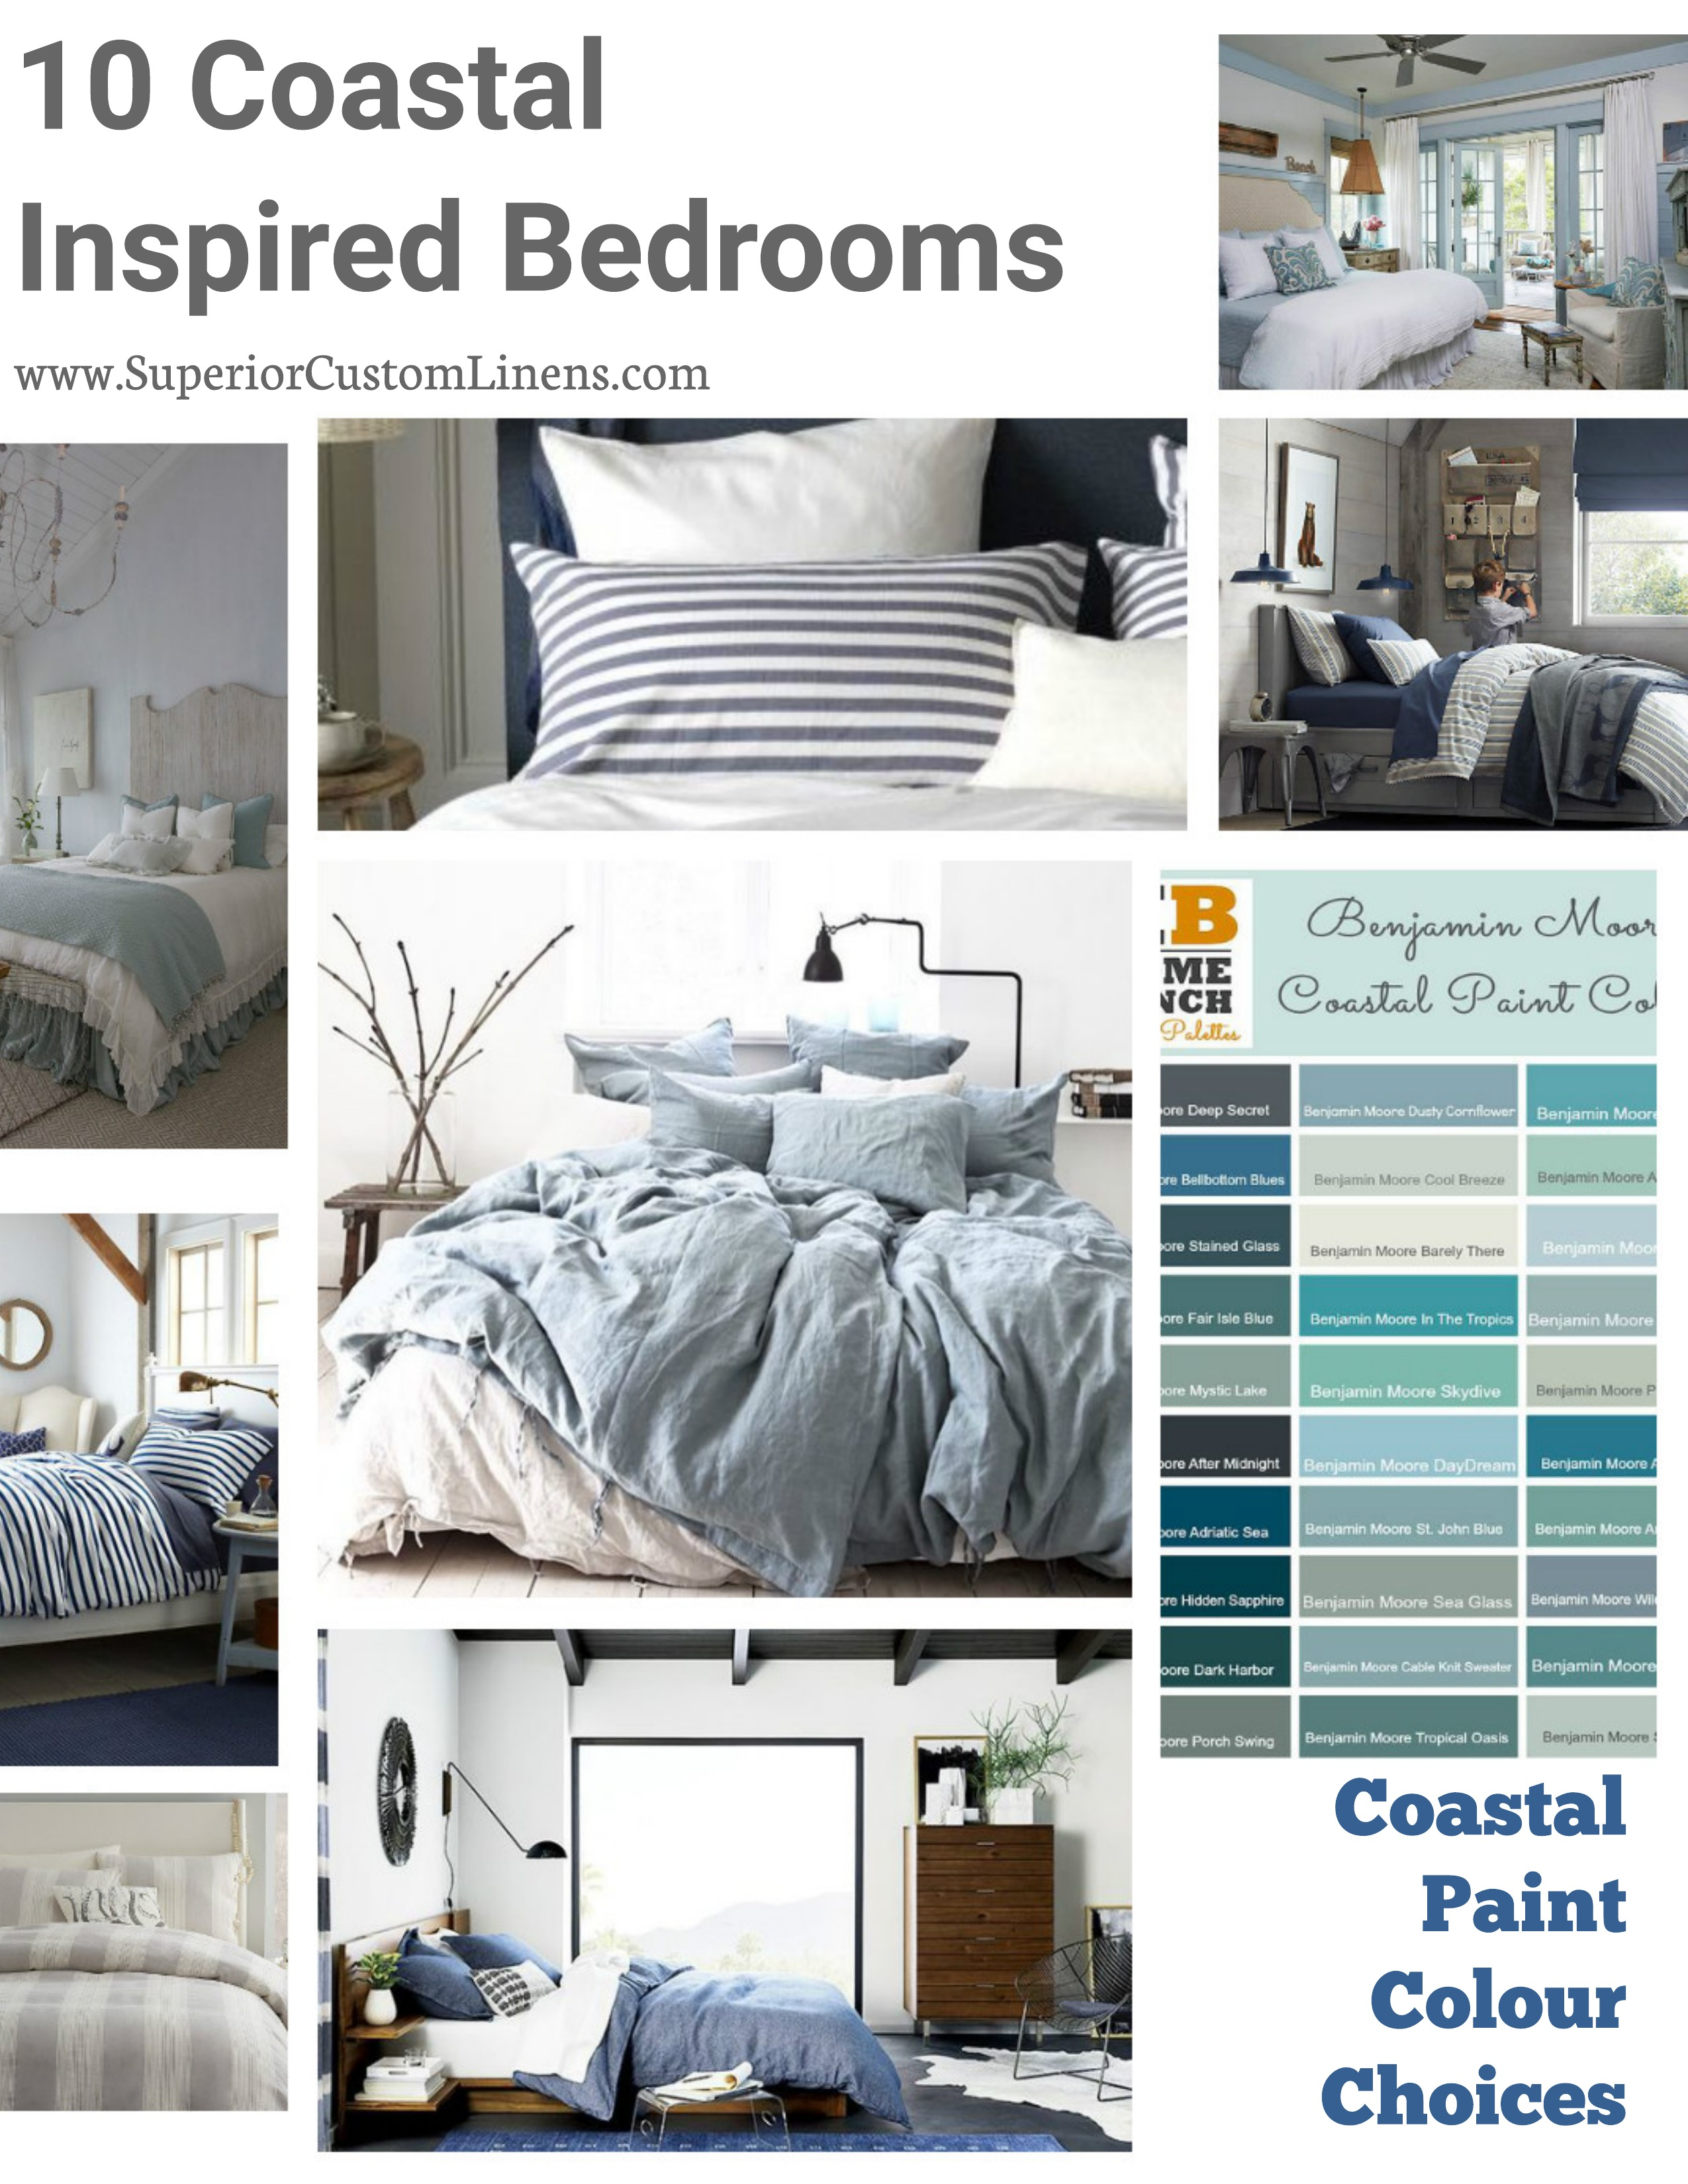 10 Coastal Inspired Bedrooms With Coastal Paint Colour Choices Superior Custom Linens